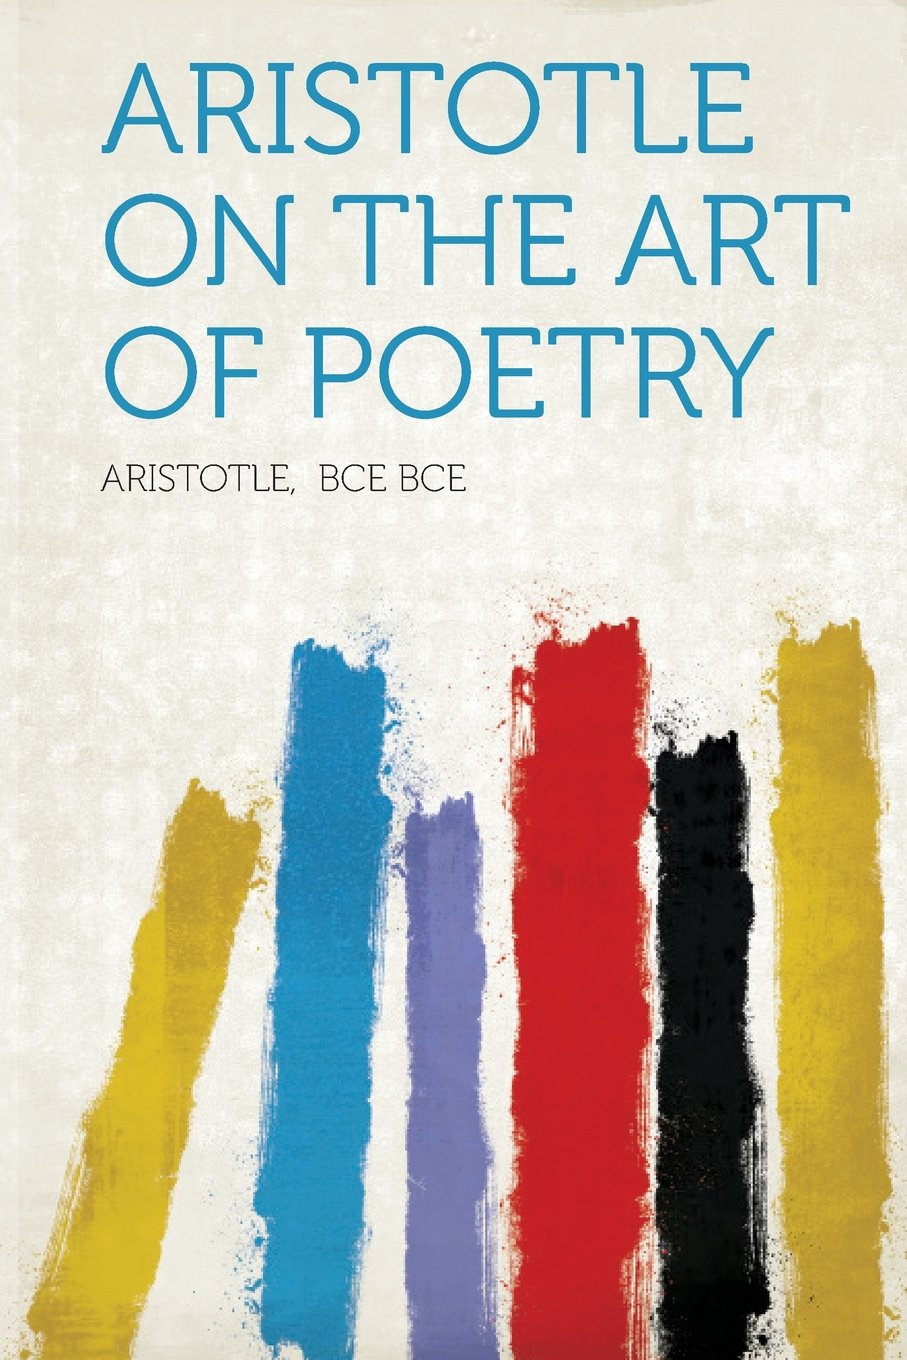 Download Aristotle on the art of poetry ebook